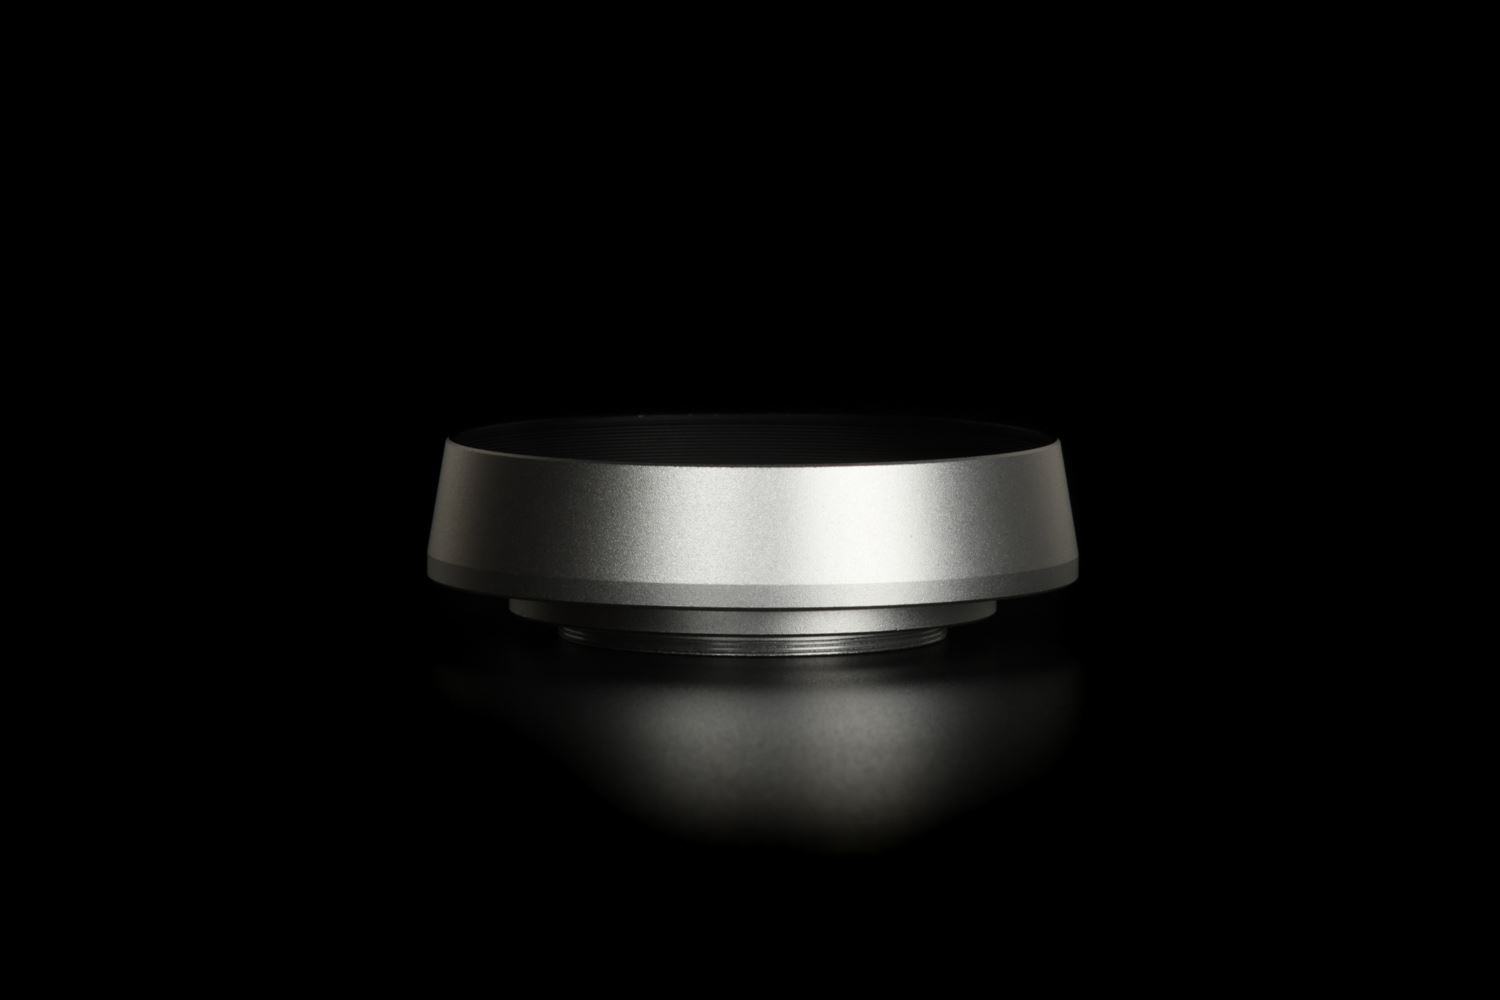 Picture of Silver Ventilated Lens Hood made for Leica E39 lenses